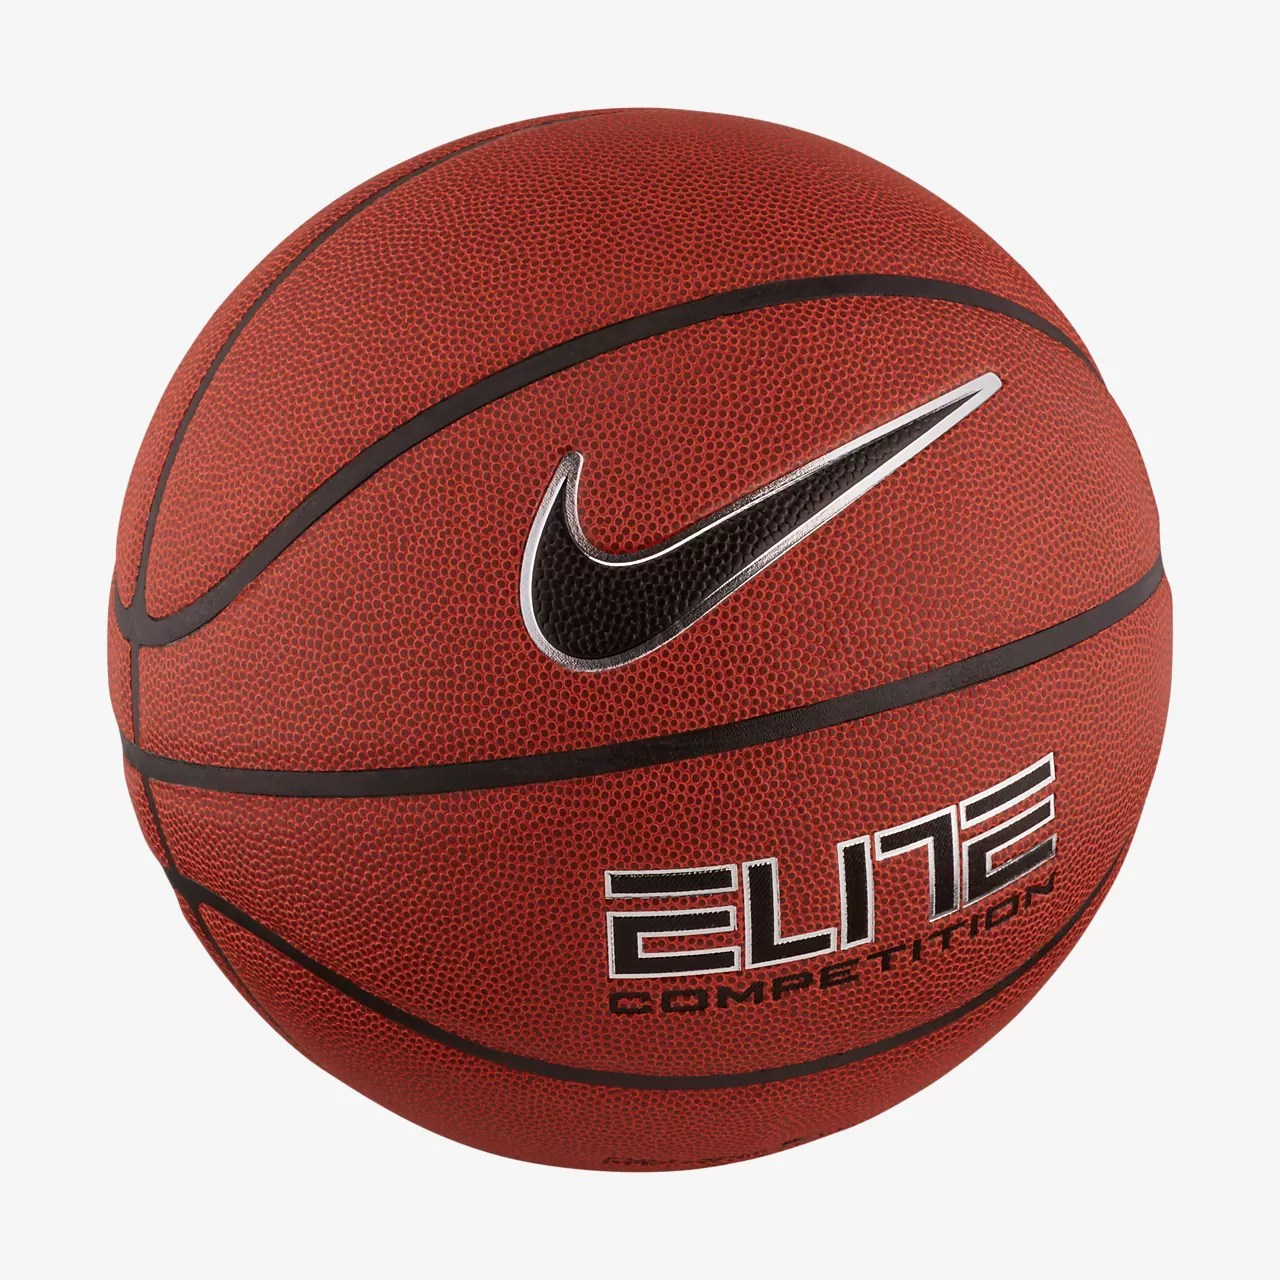 Ballon De Basket Exterieur Ballon De Basketball Nike Elite Competition 8p. Nike.com Fr